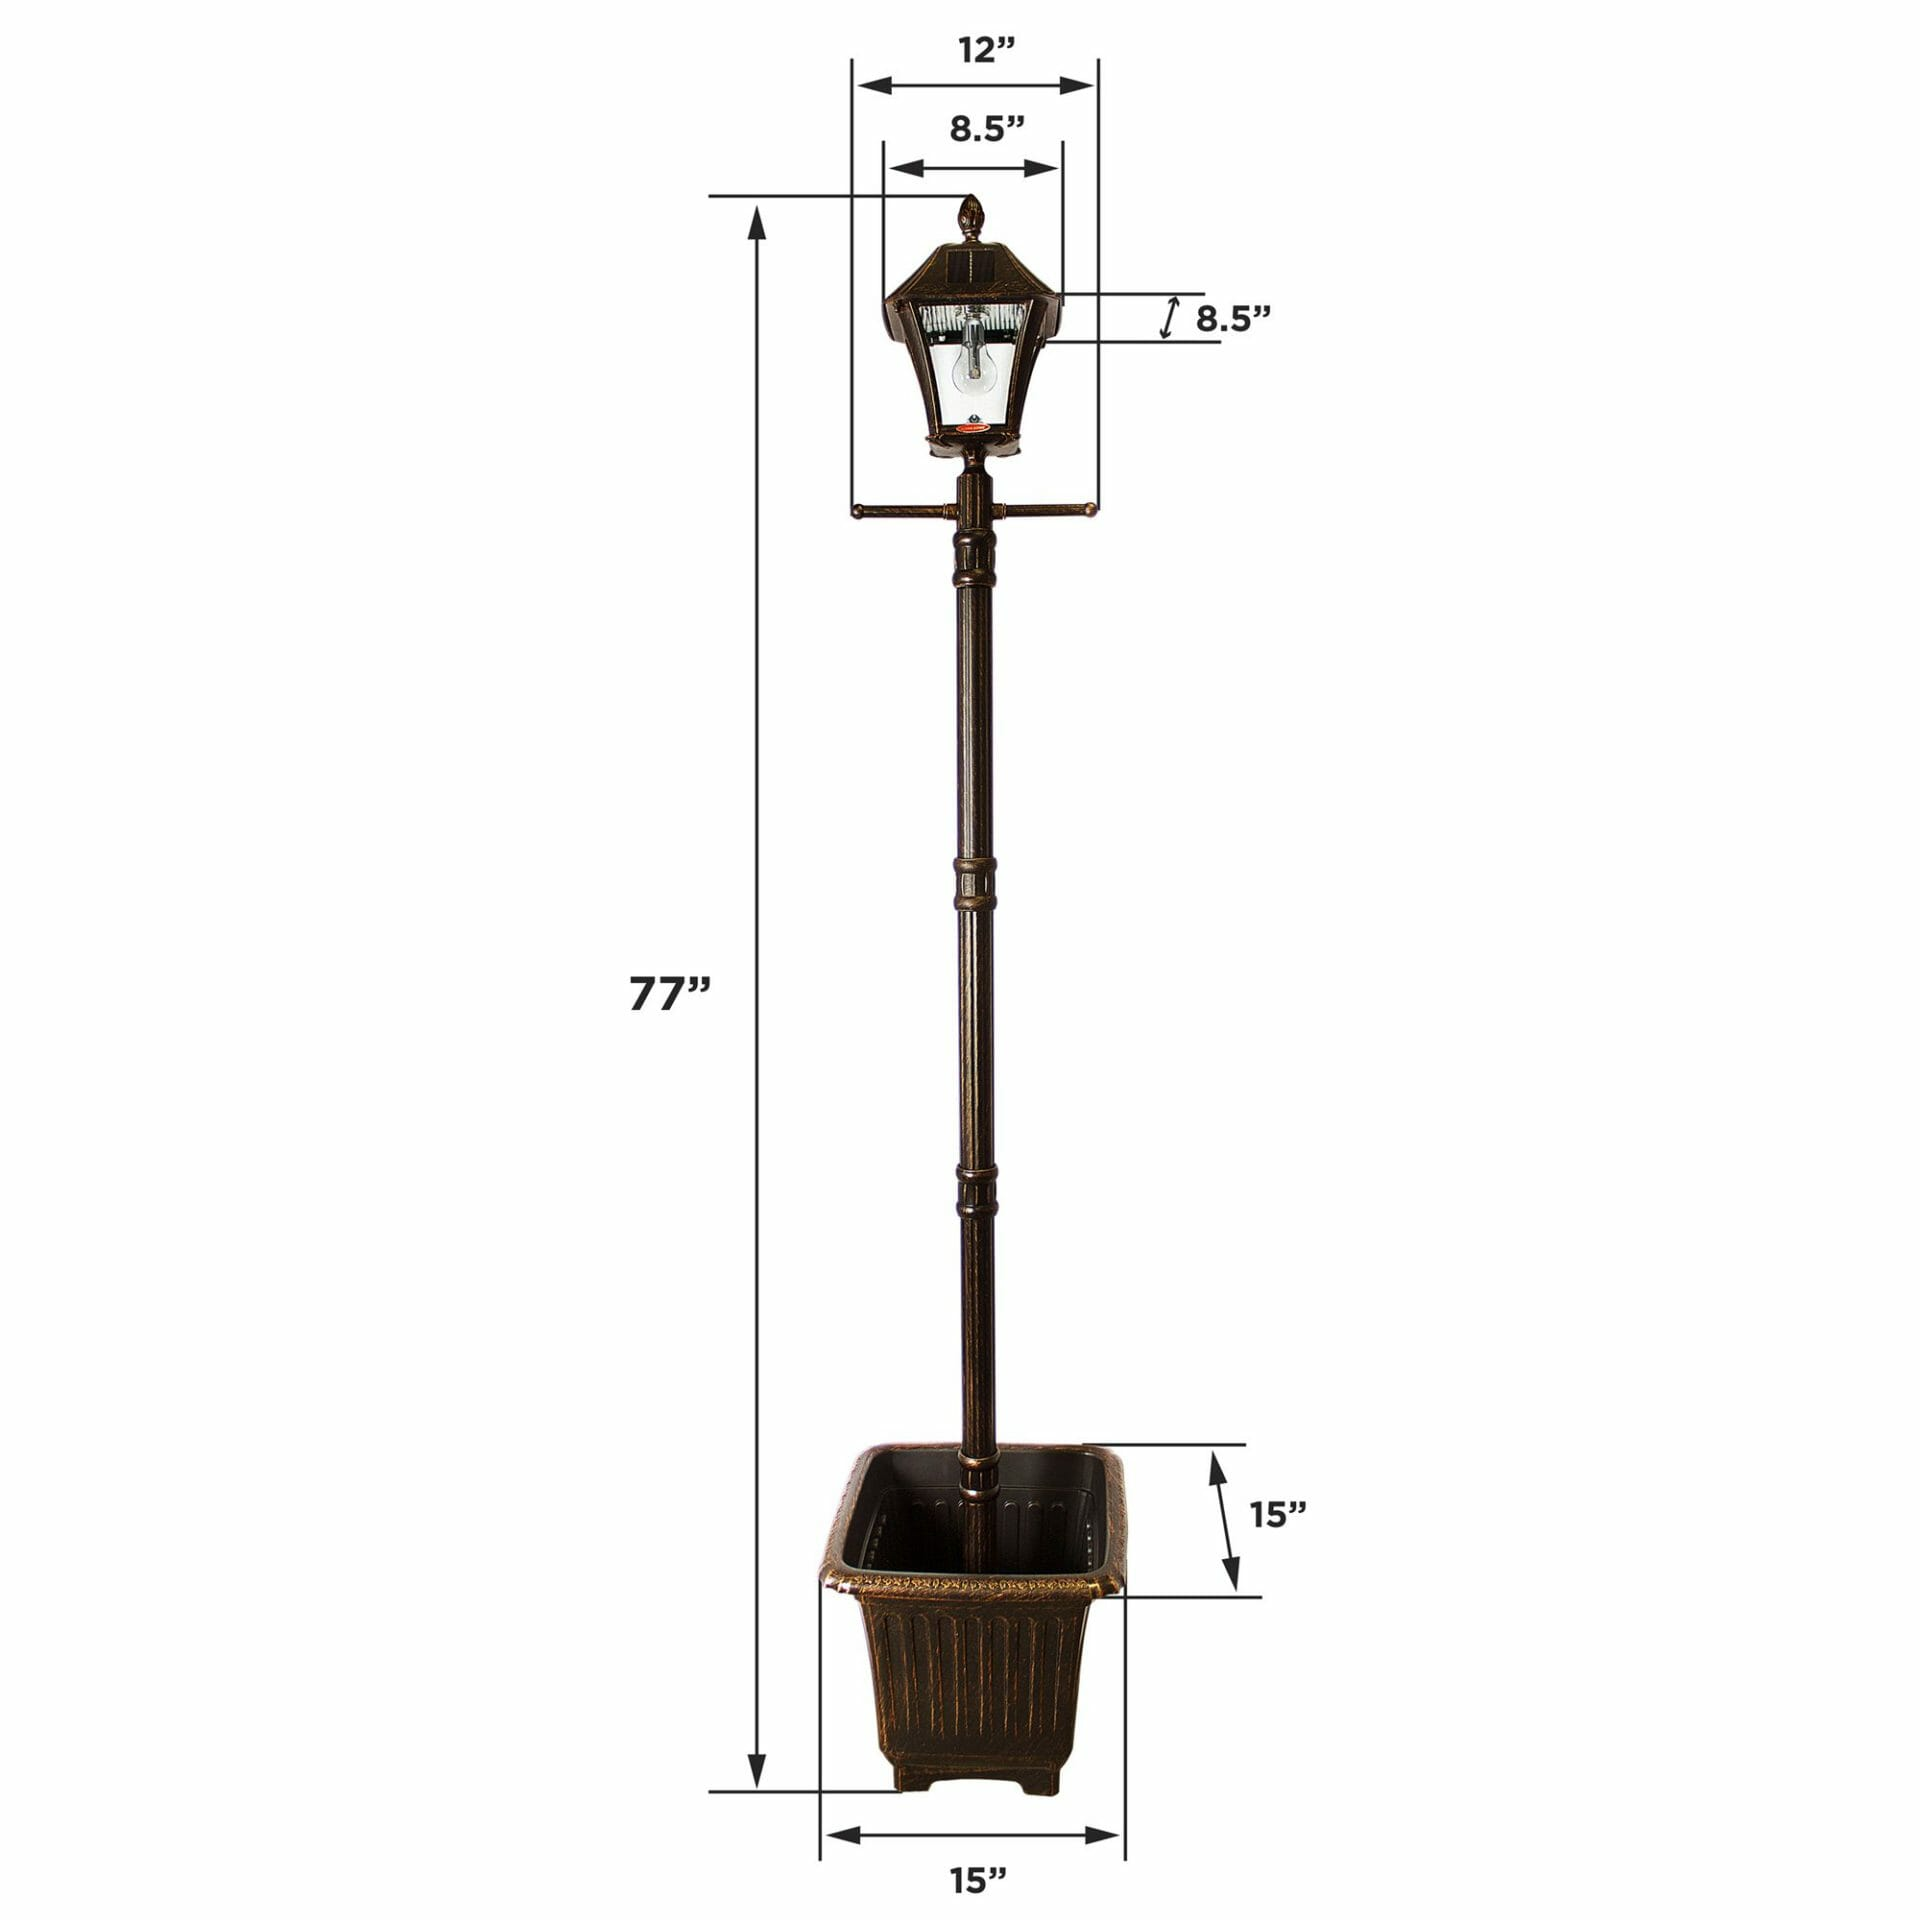 Baytown Bulb Solar Lamp Post with EZ-Anchor and Planter - Dimensions